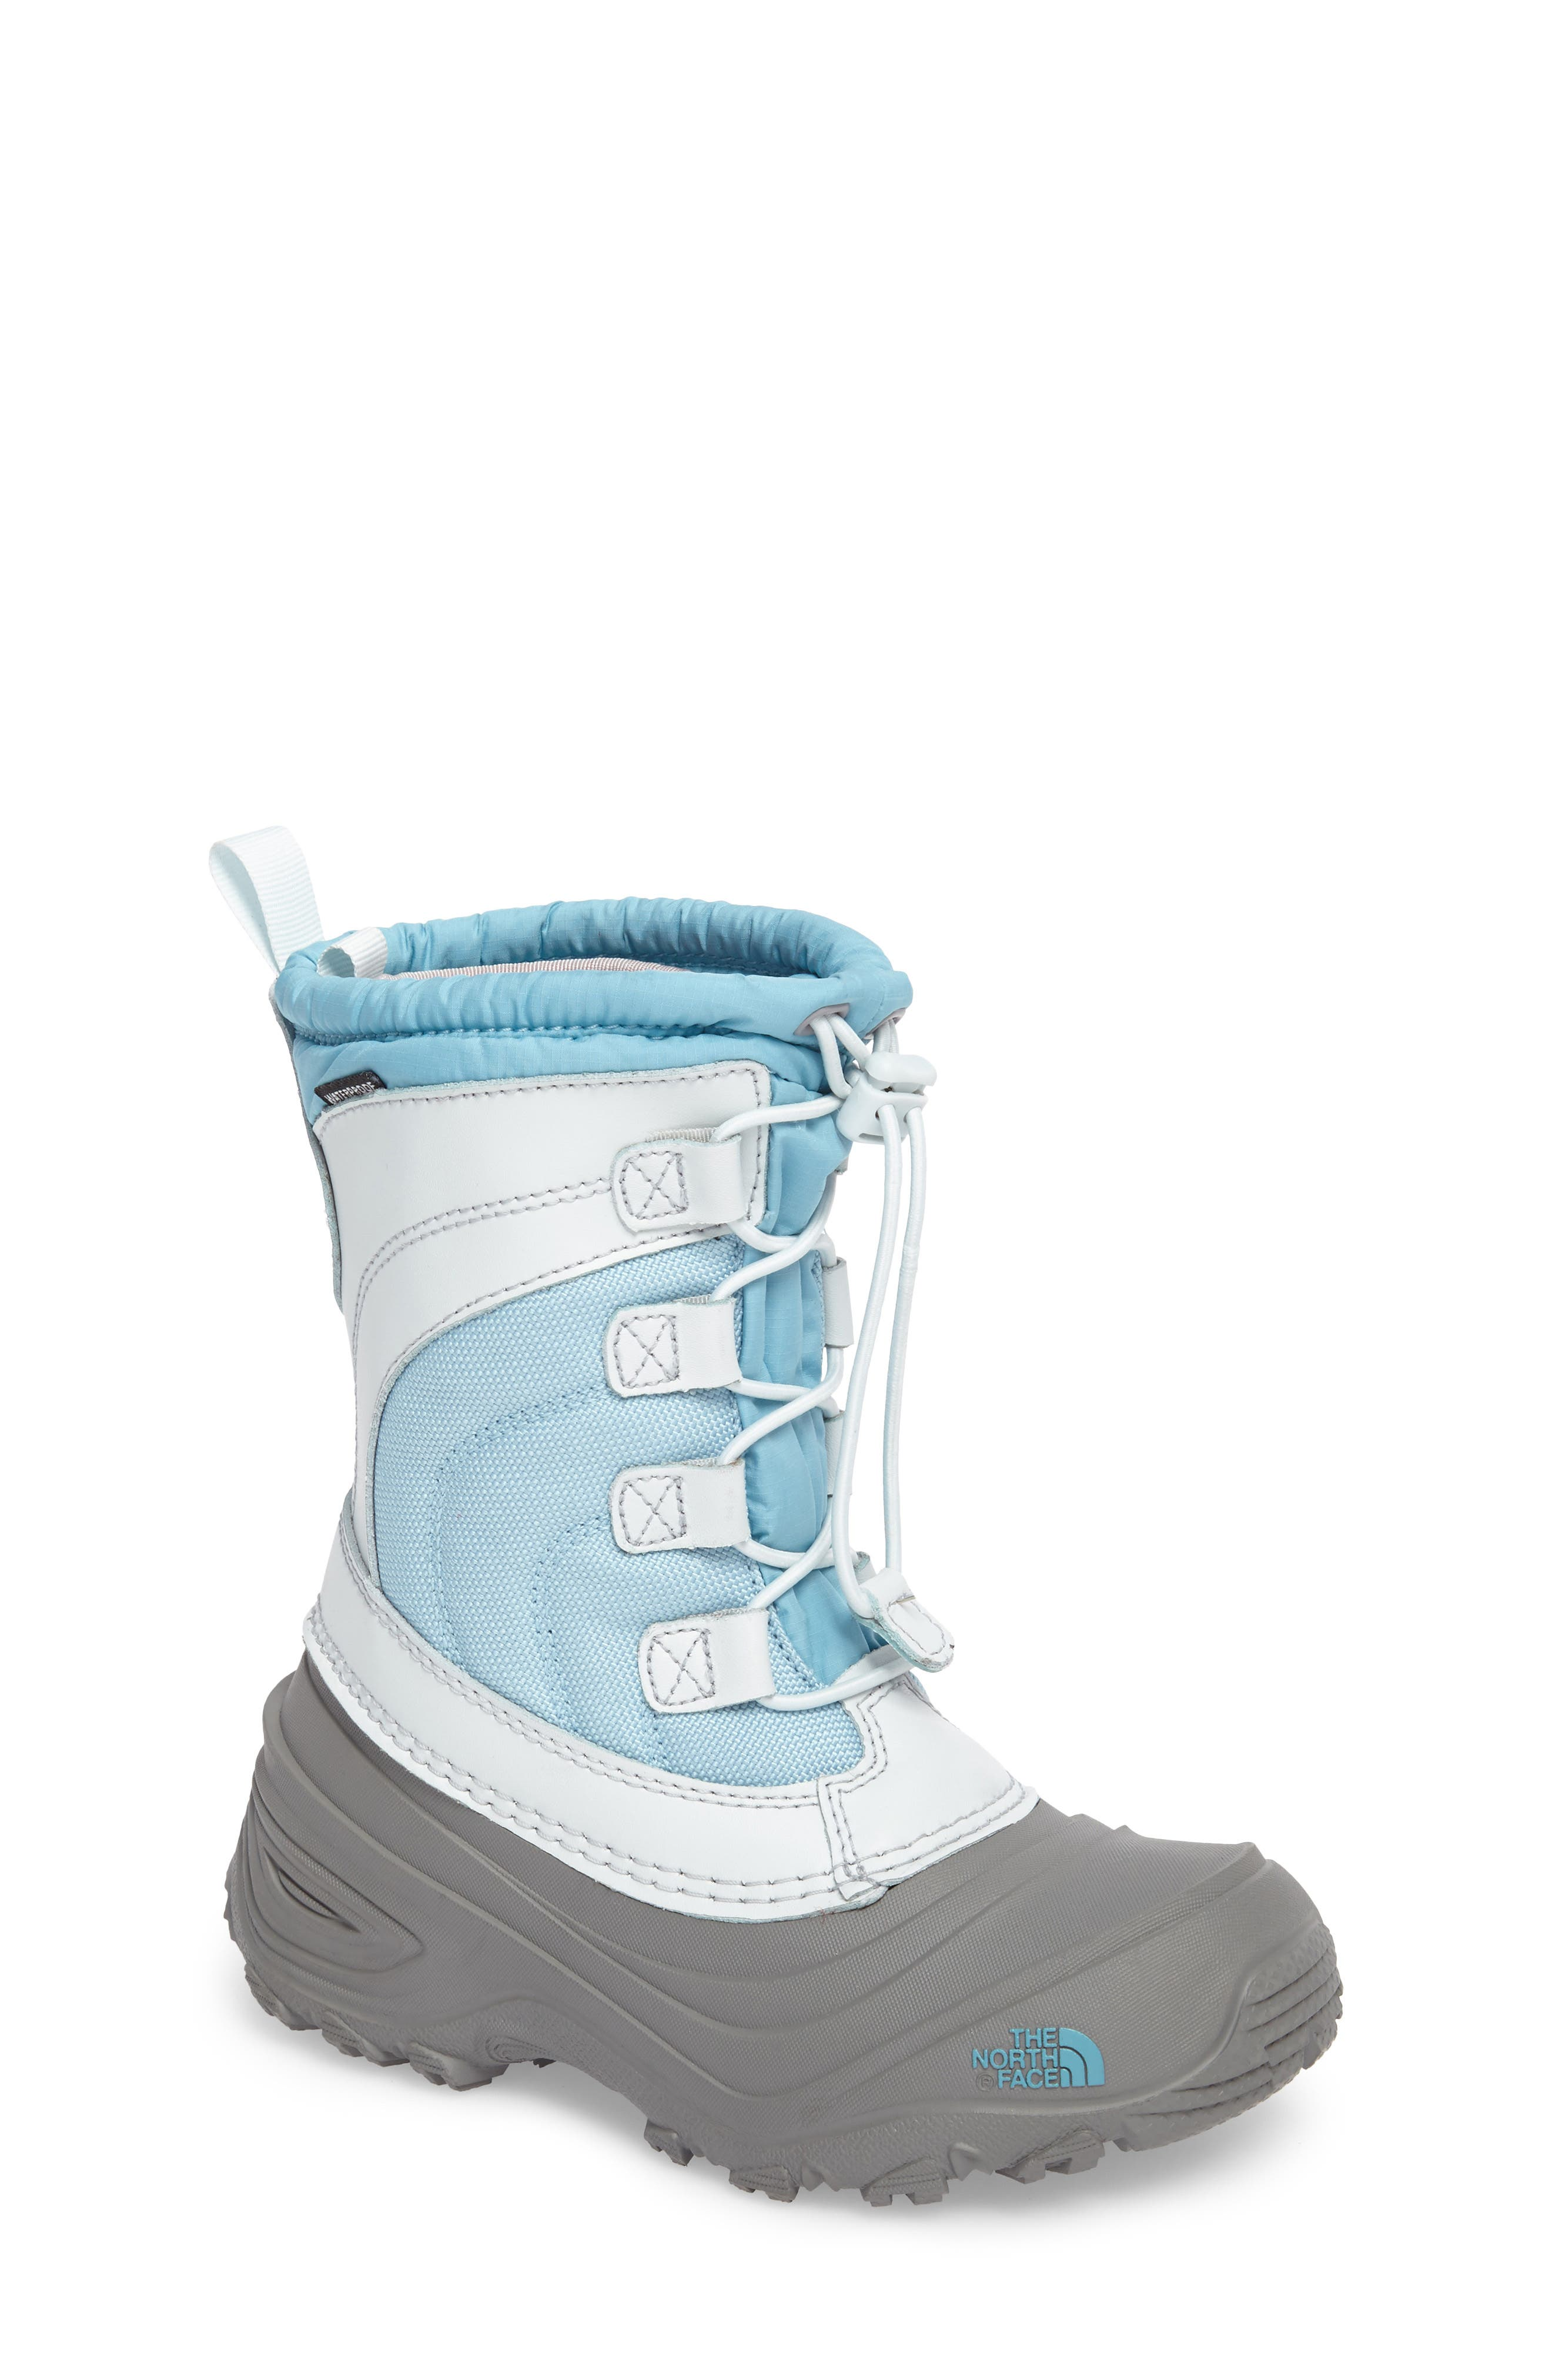 Alpenglow IV Waterproof Insulated Winter Boot,                         Main,                         color, 400